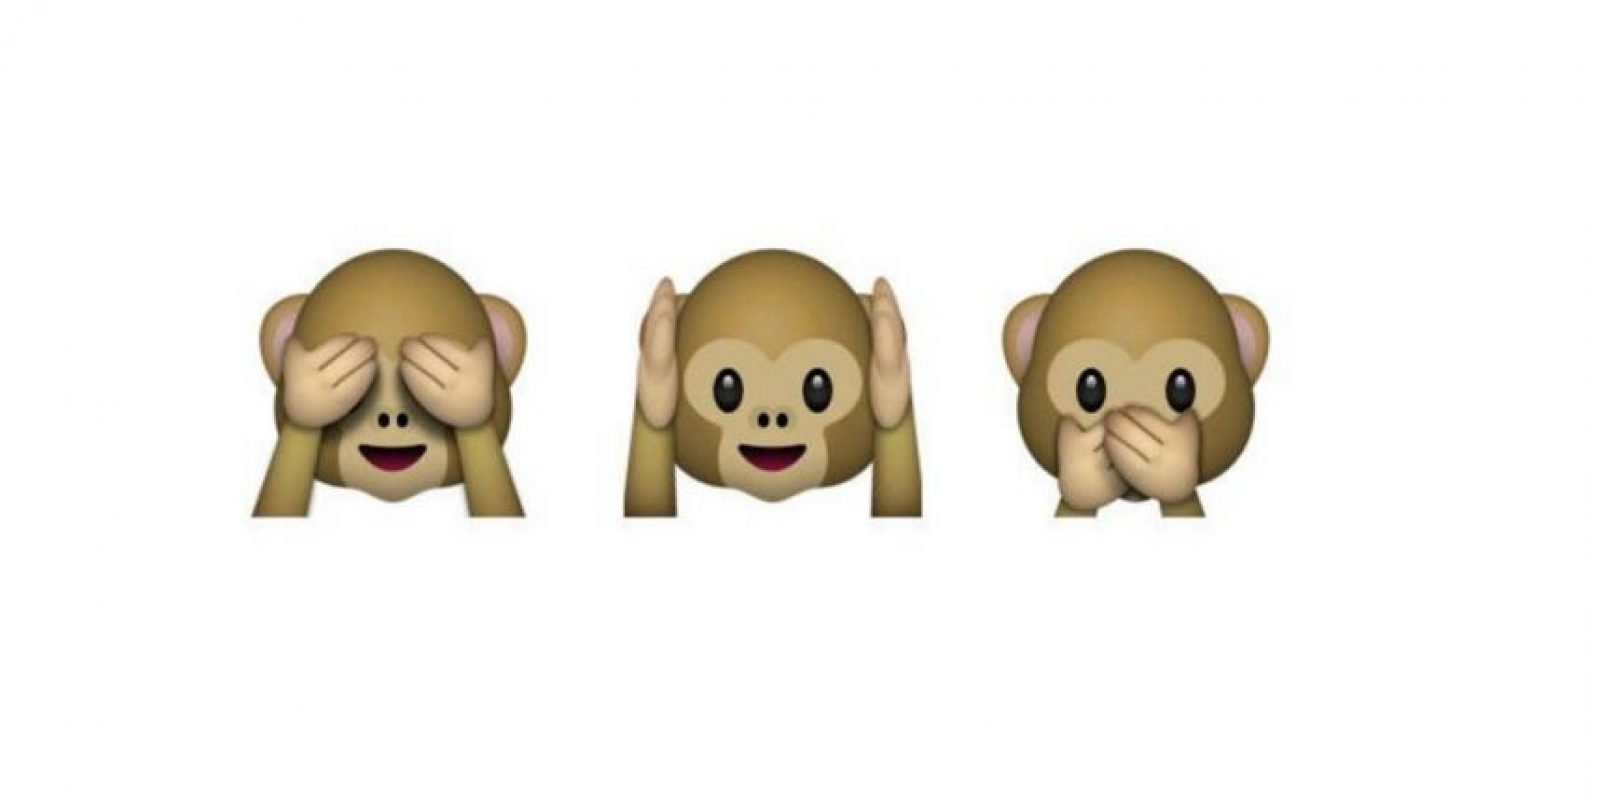 Los emoticones son parte de la cultura actual de Occidente. Foto: Emojipedia